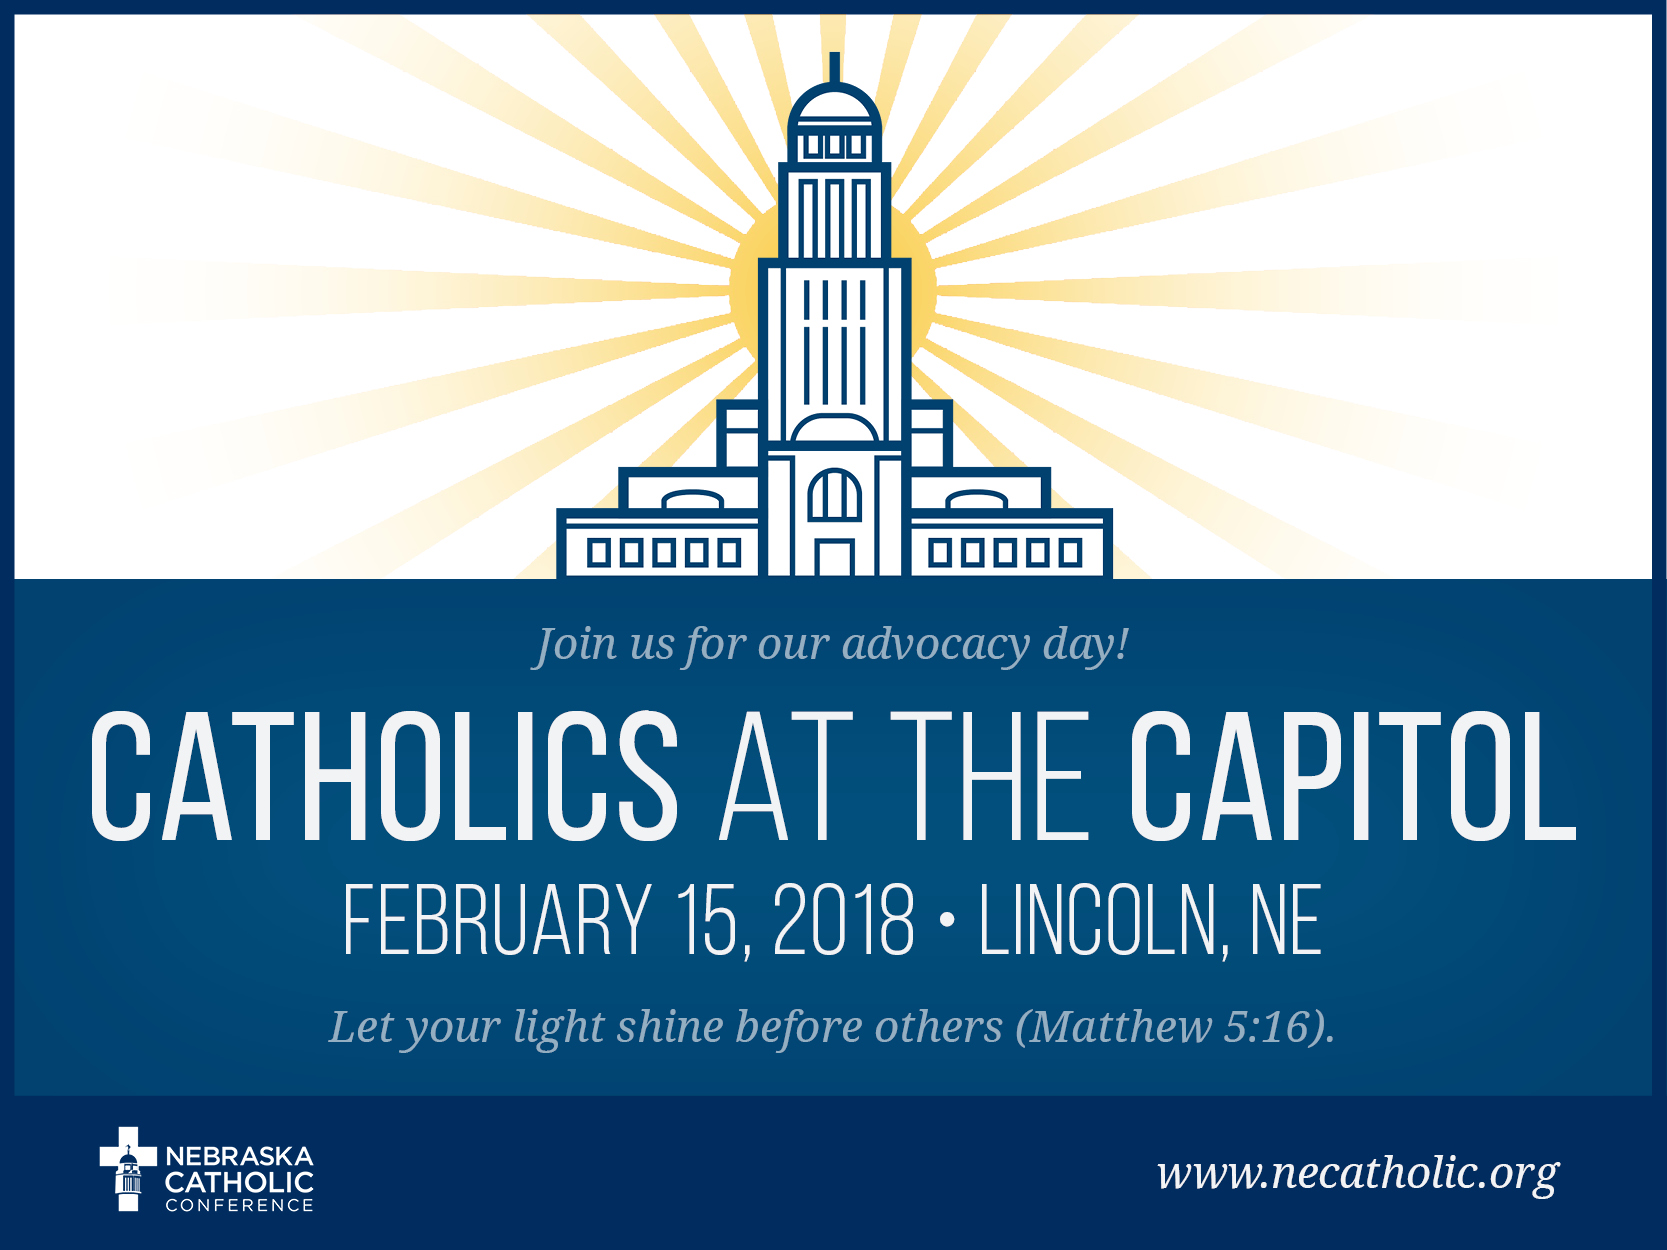 Catholics at the Capitol